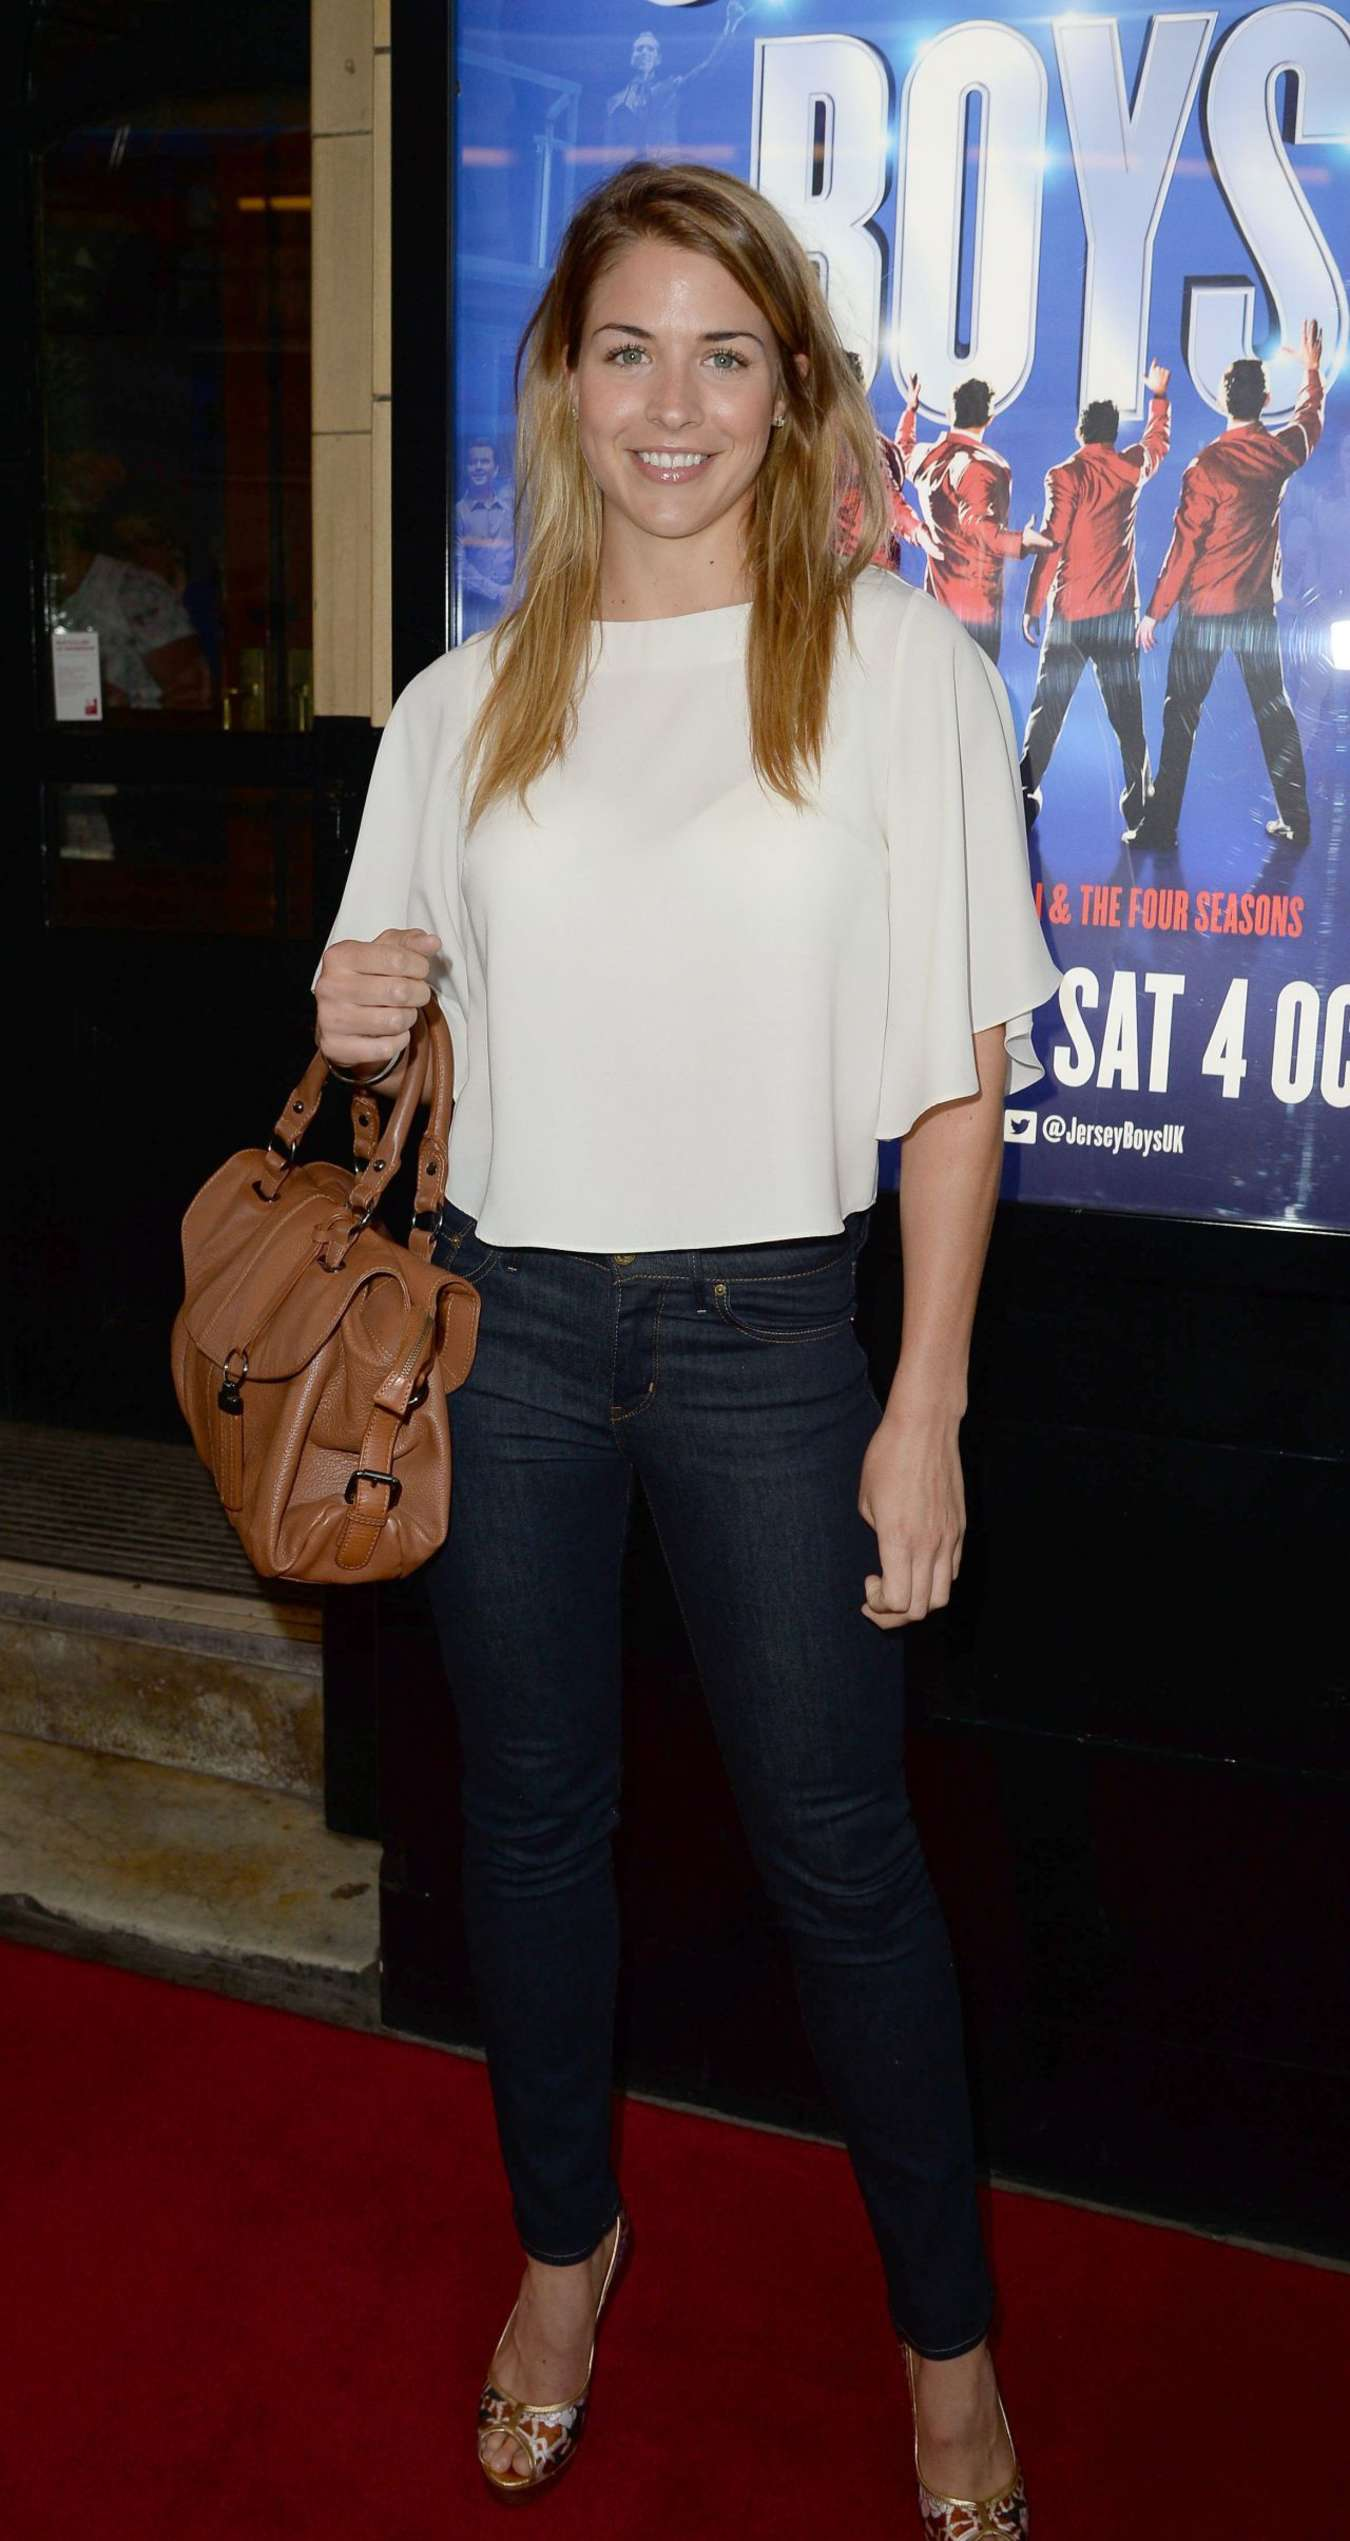 Gemma Atkinson - Jersey Boys Press Night in Manchester